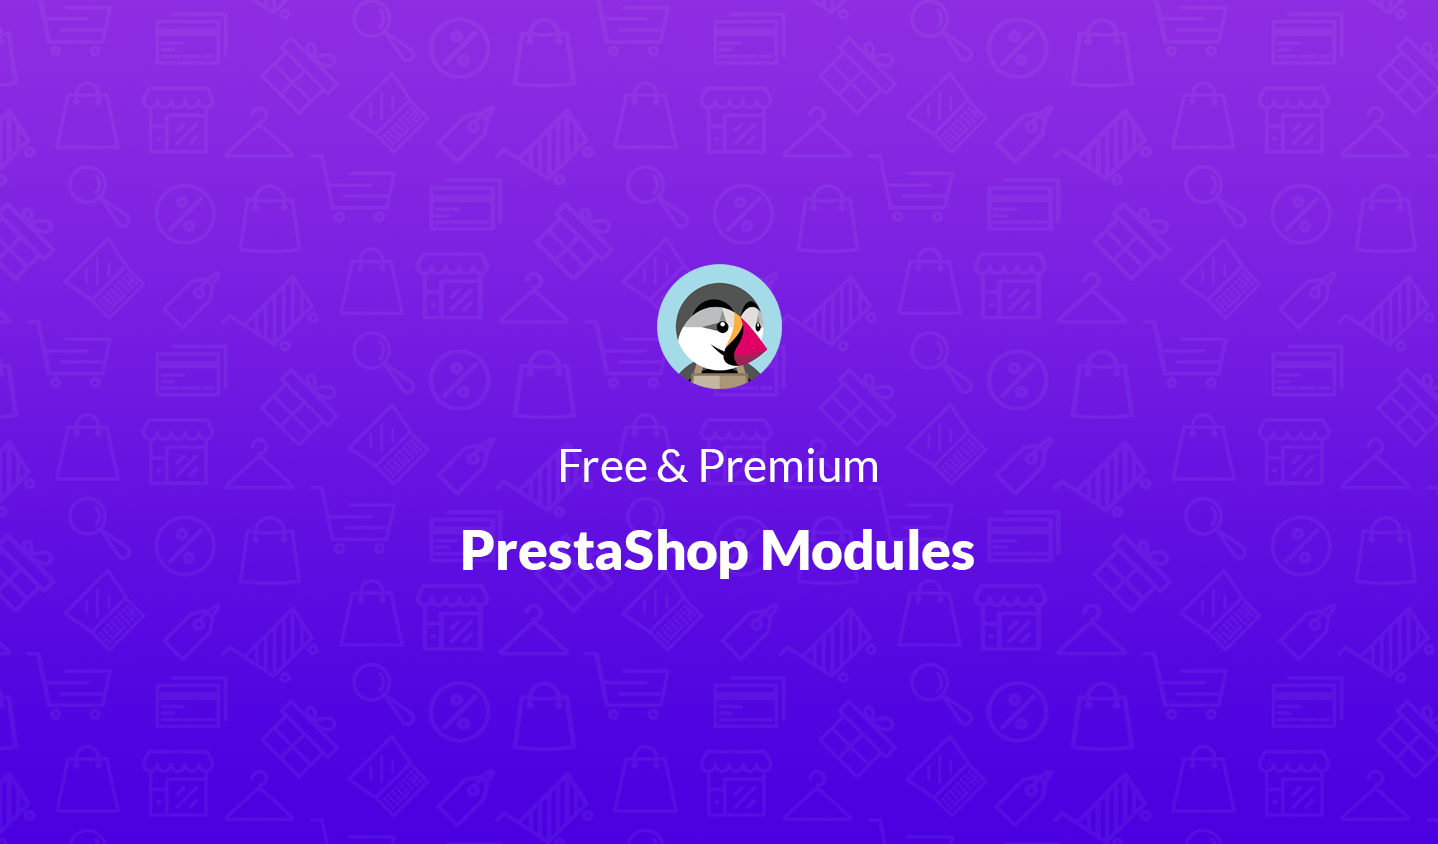 Free and Premium PrestaShop Modules